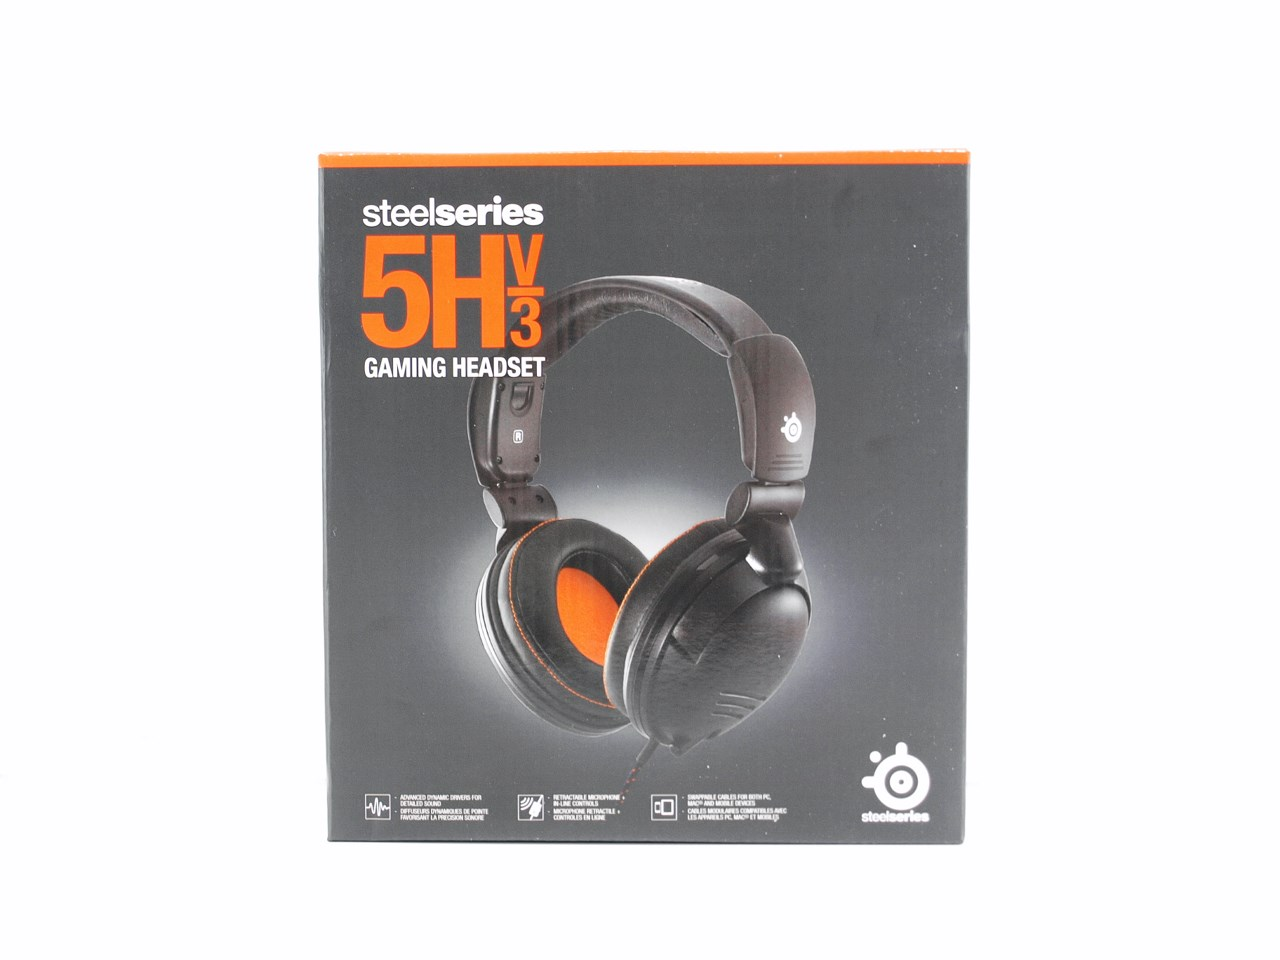 SteelSeries 5Hv3 Gaming Headset Review